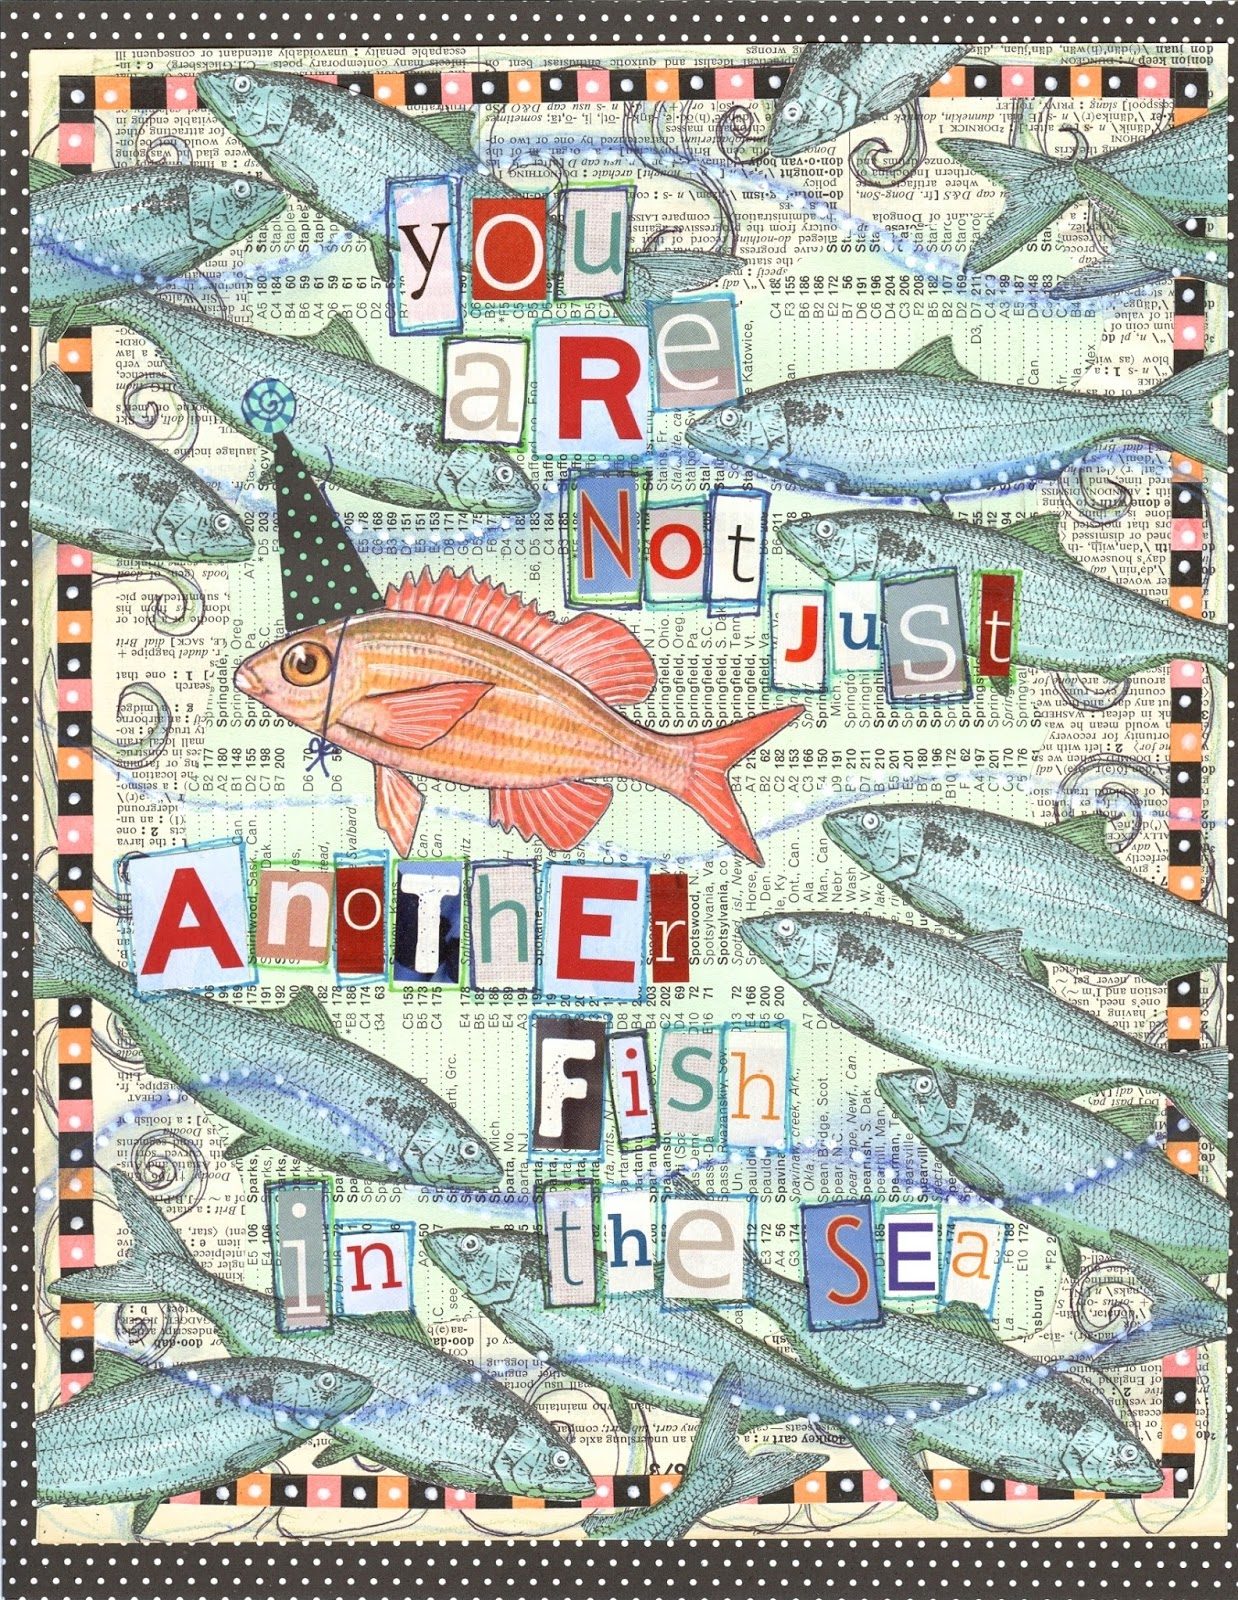 Not just another Fish - Shelly Massey